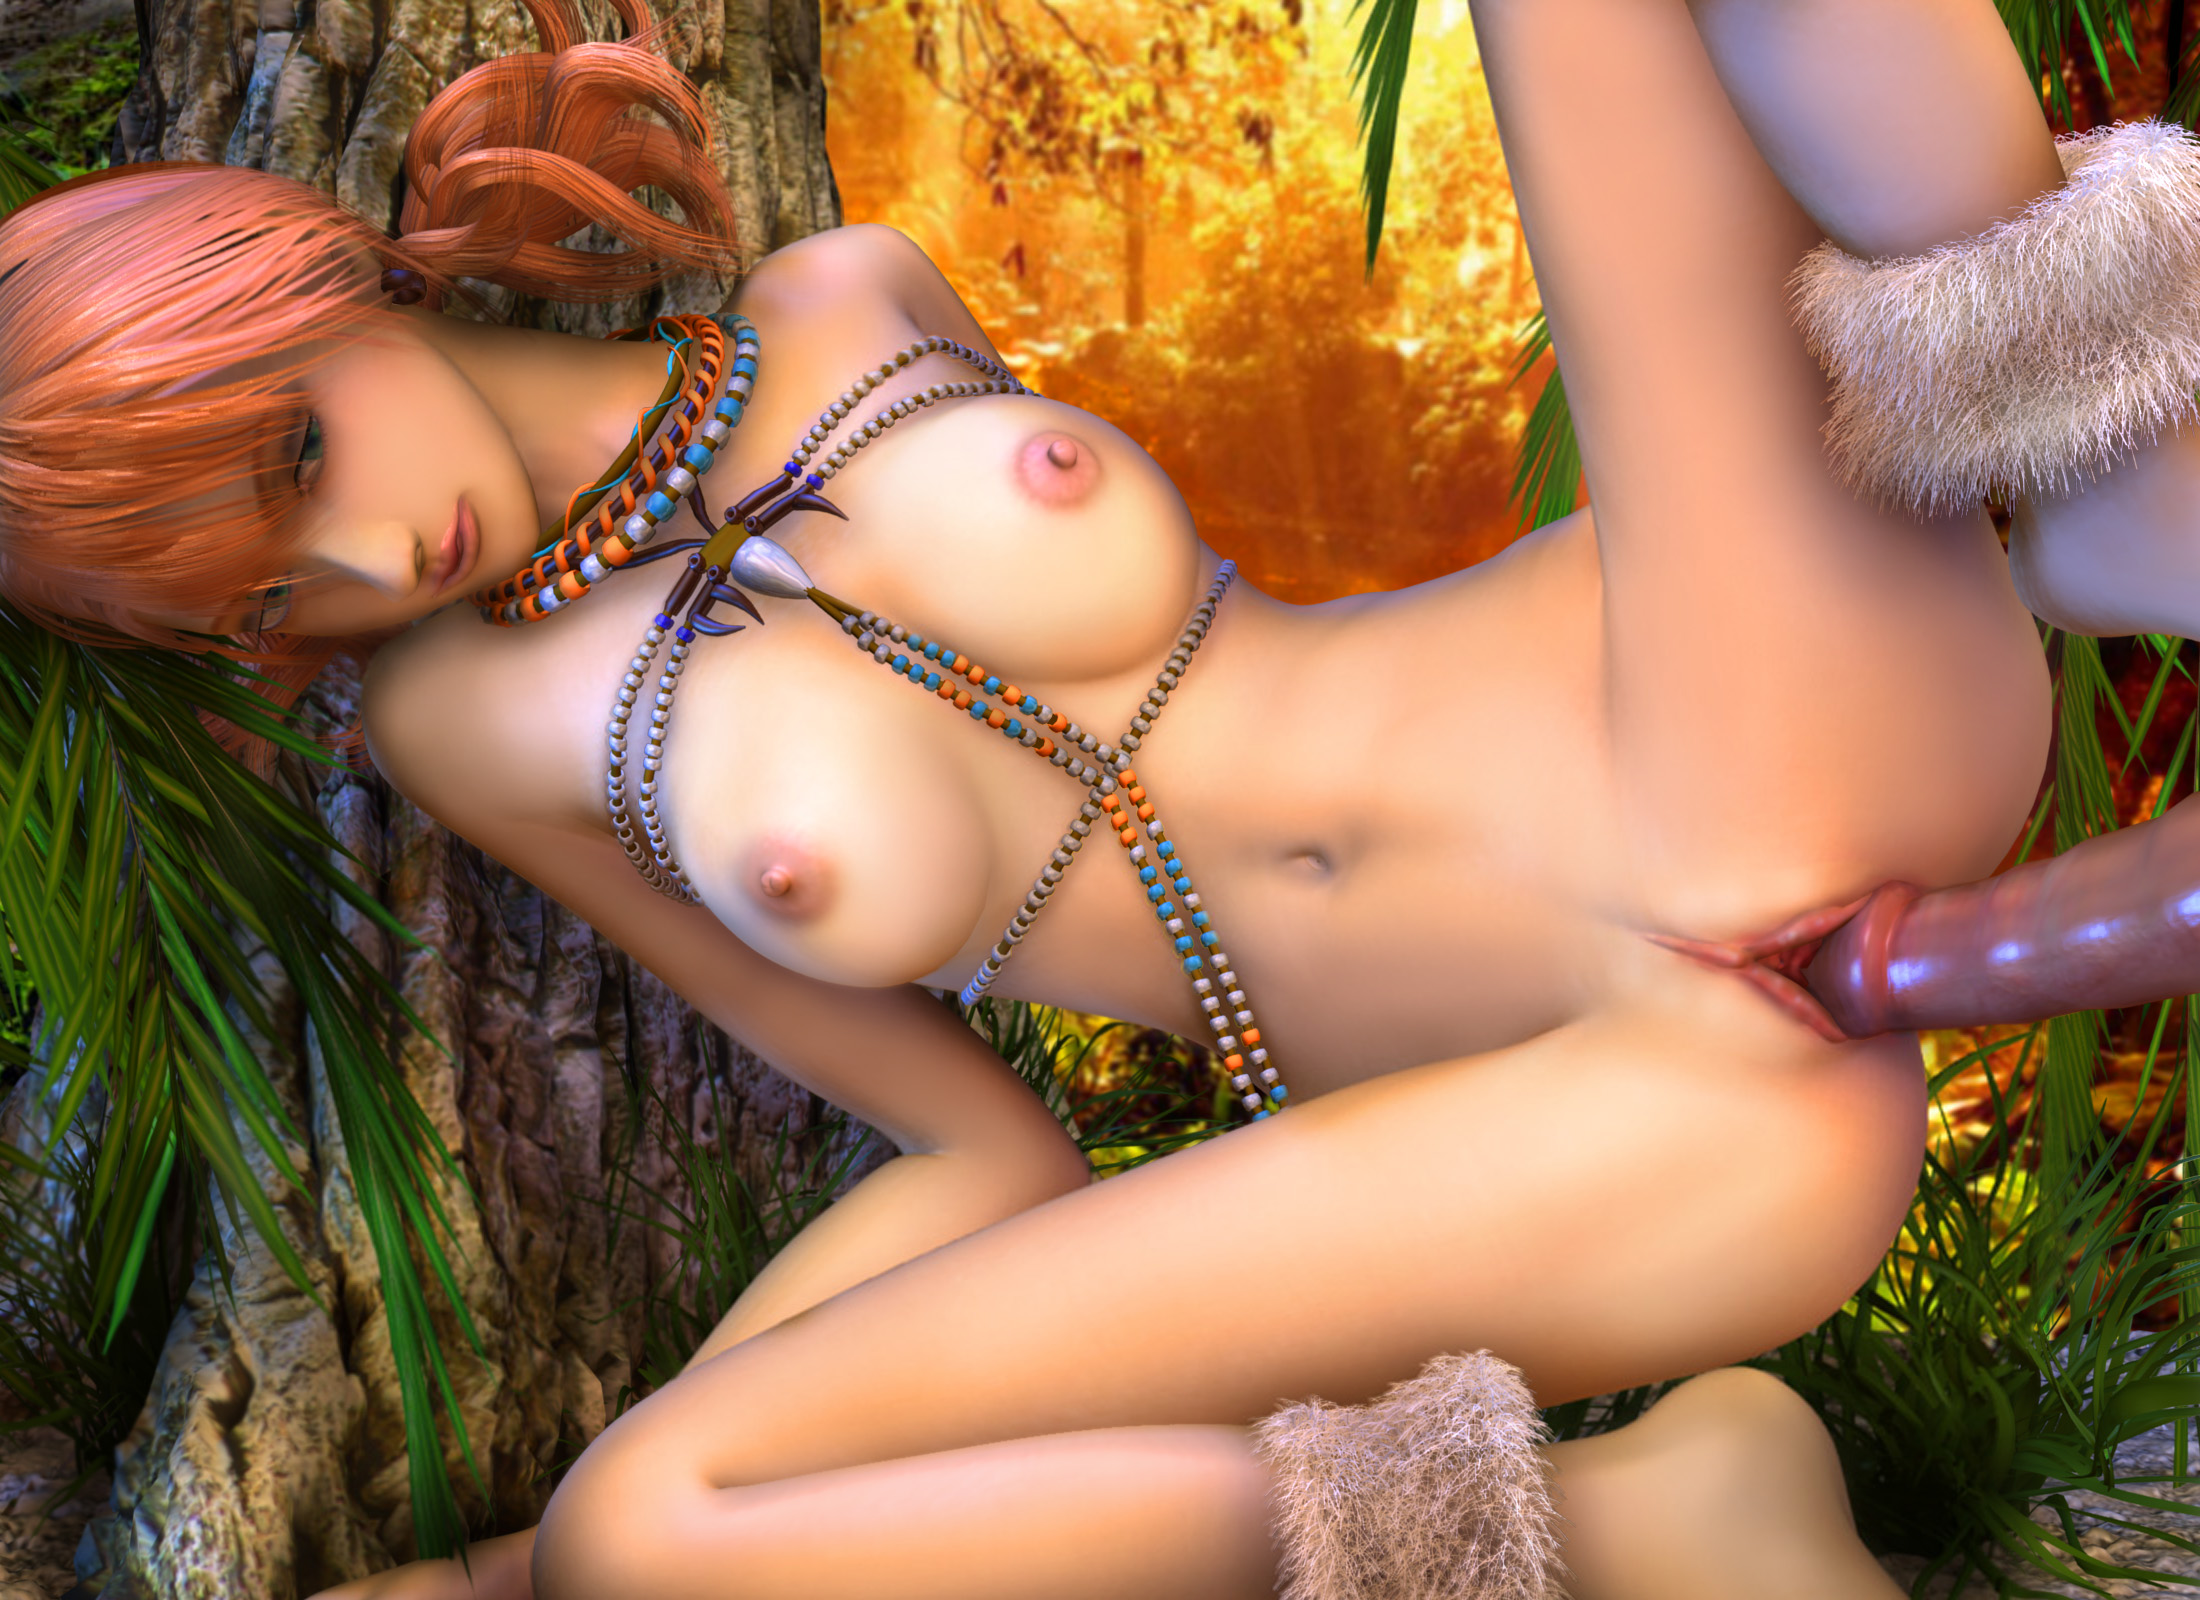 3d fantasy porn hentai video sex scene